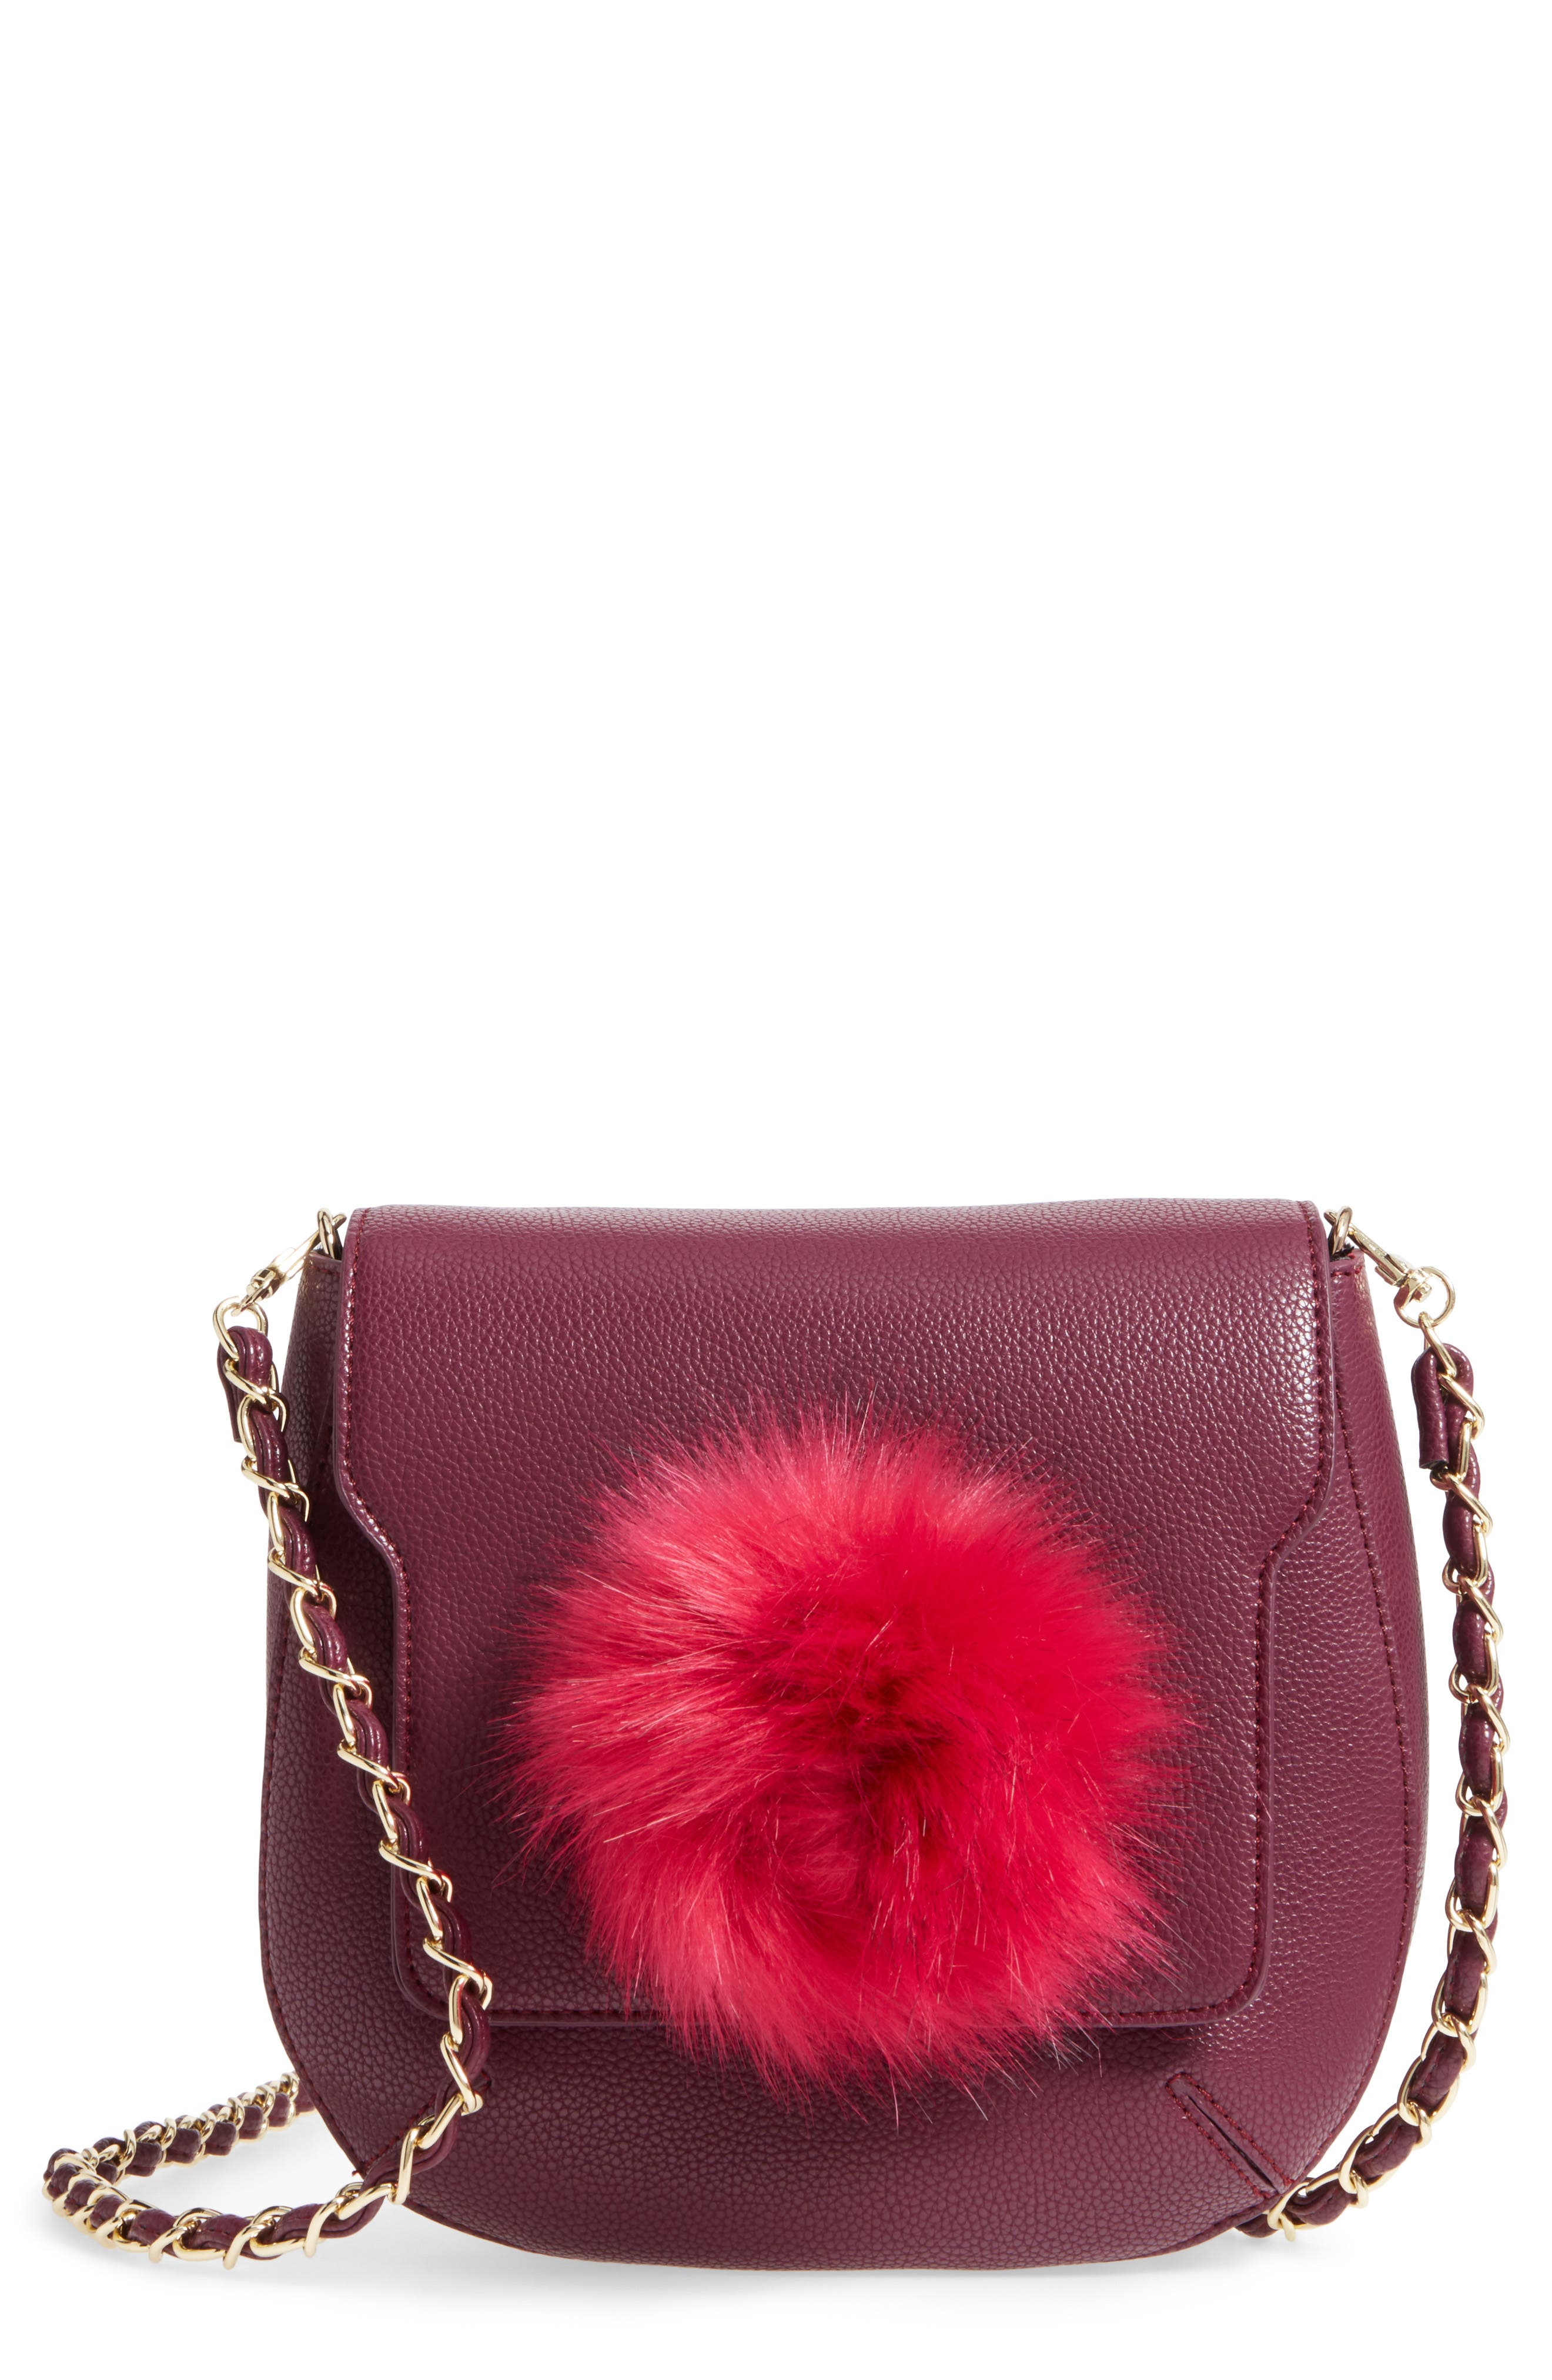 Isa Faux Leather Crossbody Bag,                         Main,                         color, Berry Sweet/ Boysenberry